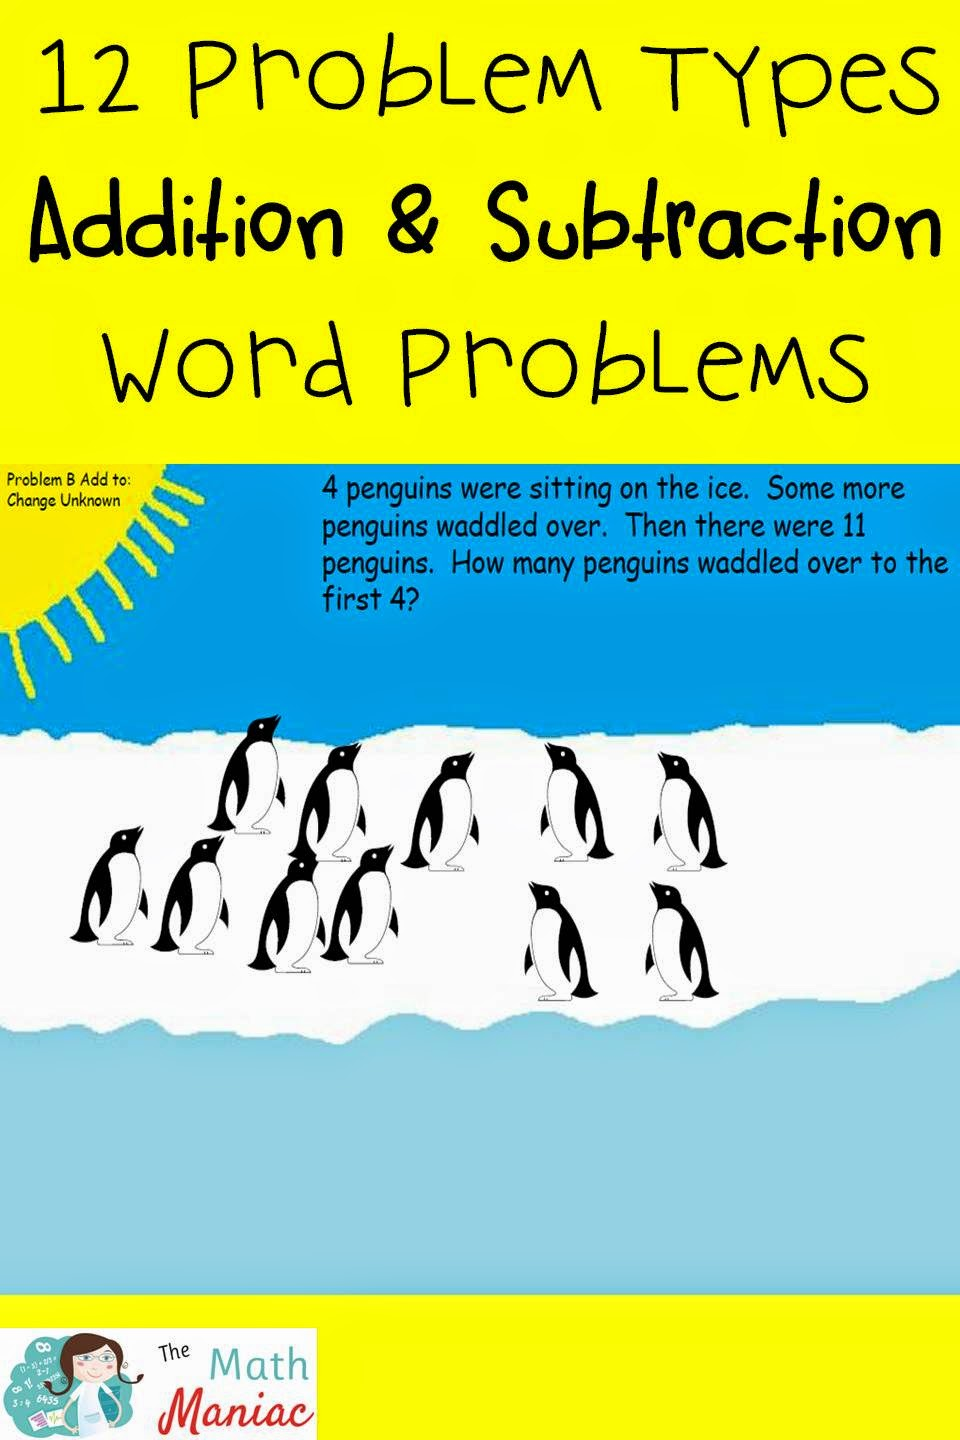 The elementary math maniac penguin problem solving addition and